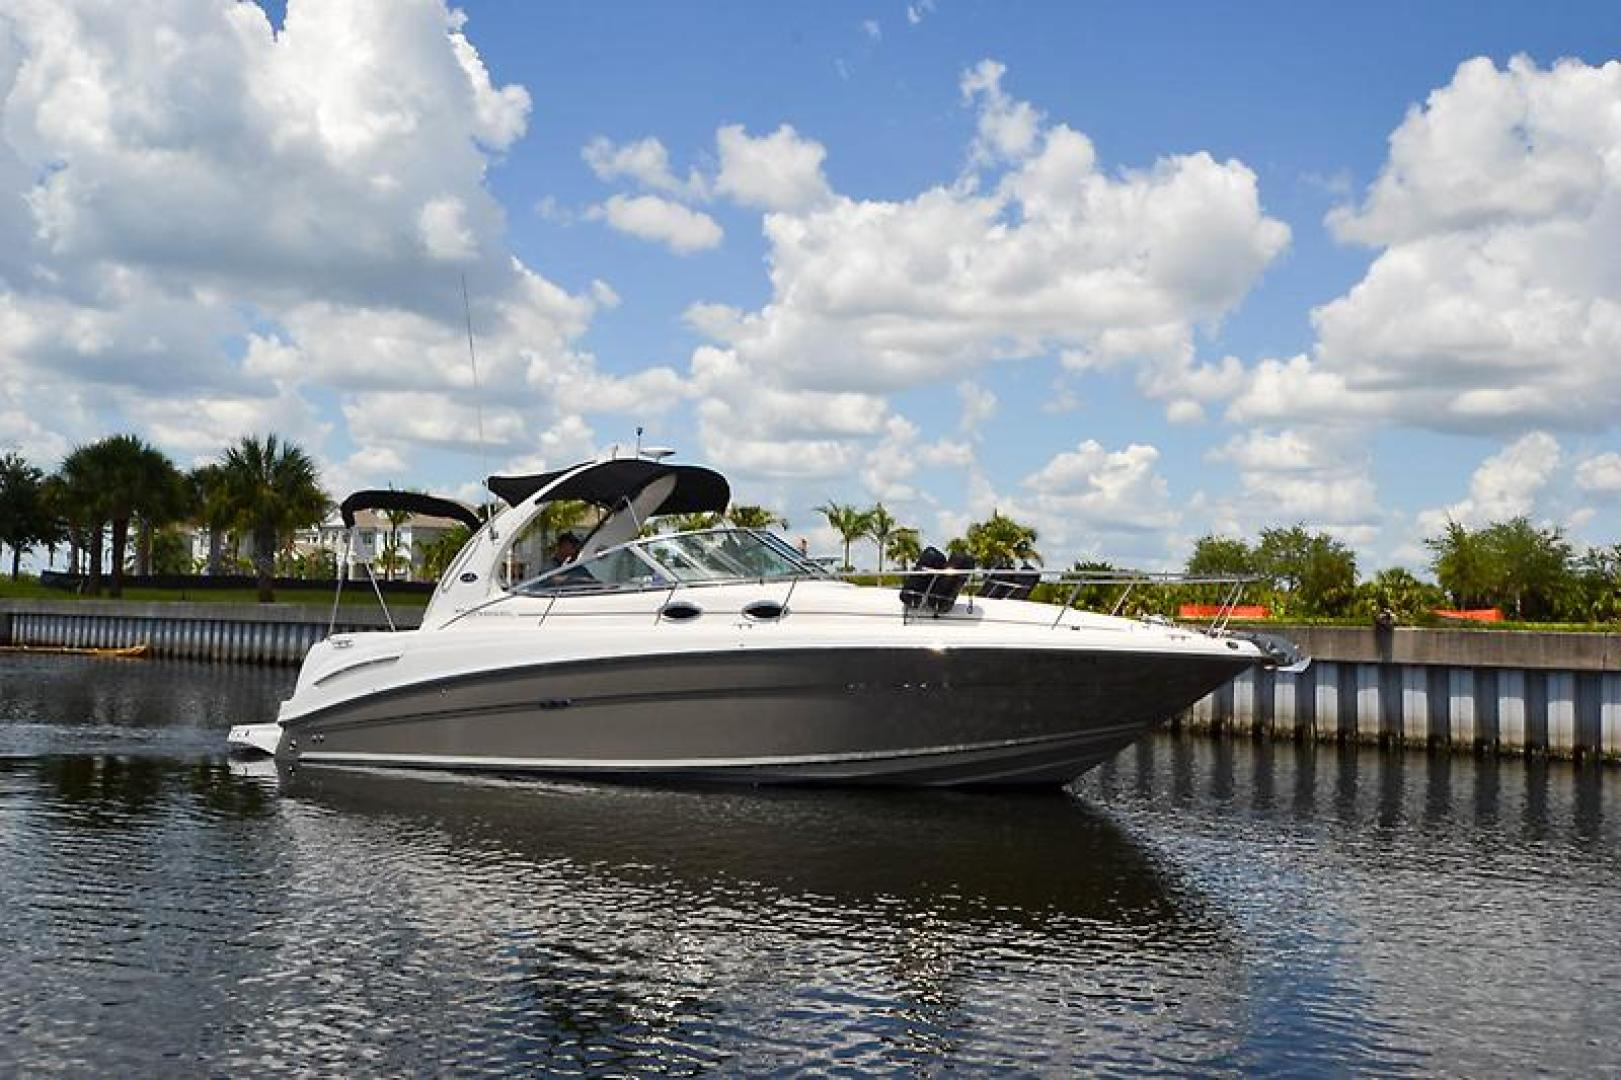 2006 Sea Ray 300 Sundancer-16-2.jpg